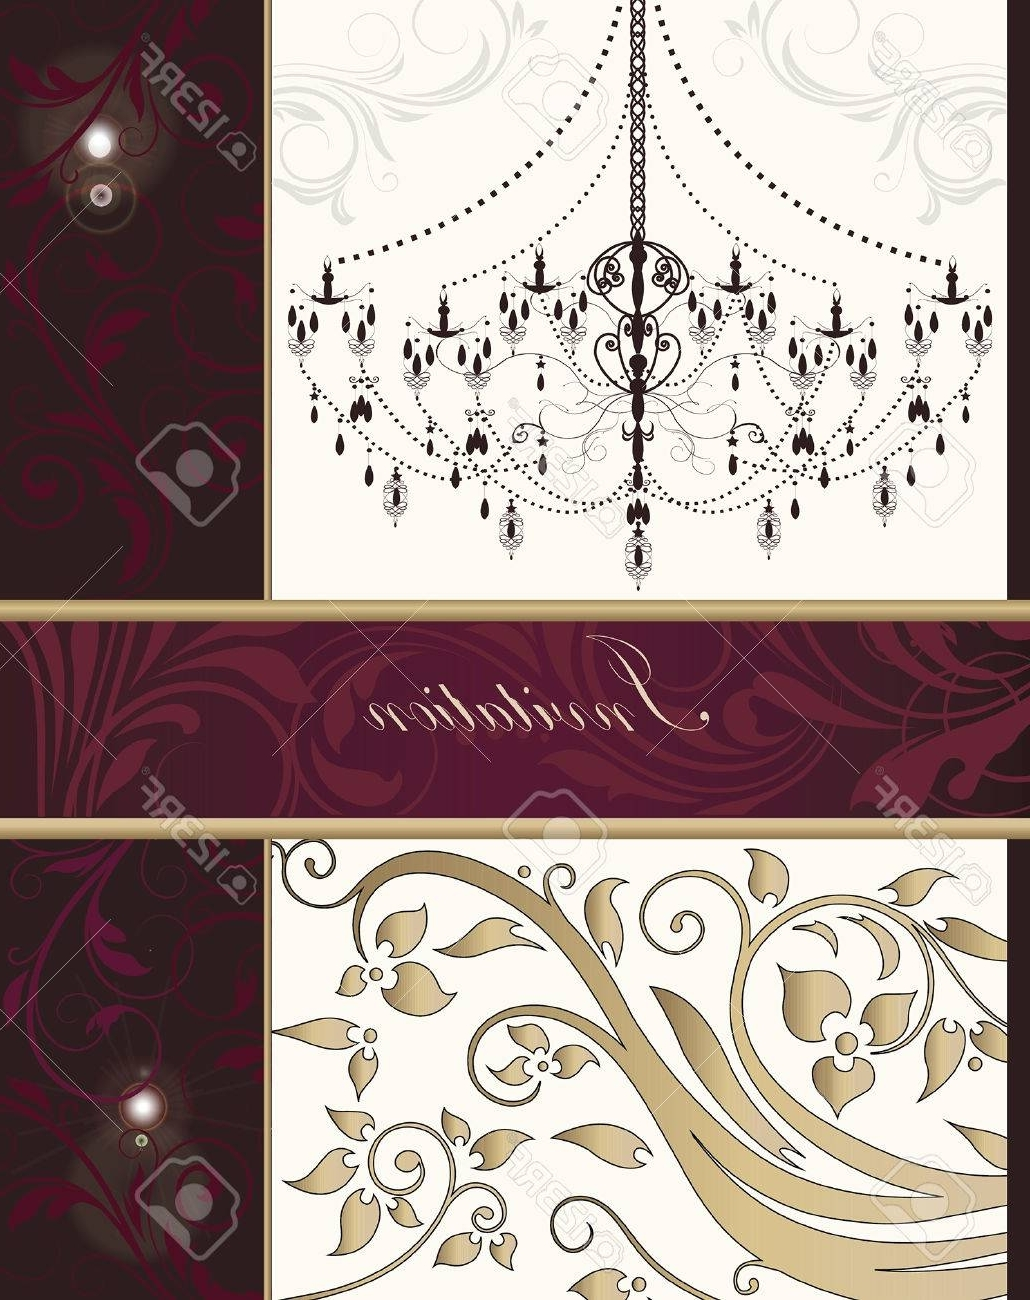 Fuschia Chandelier Intended For Popular Vintage Invitation Card With Ornate Elegant Retro Abstract Floral (View 6 of 20)